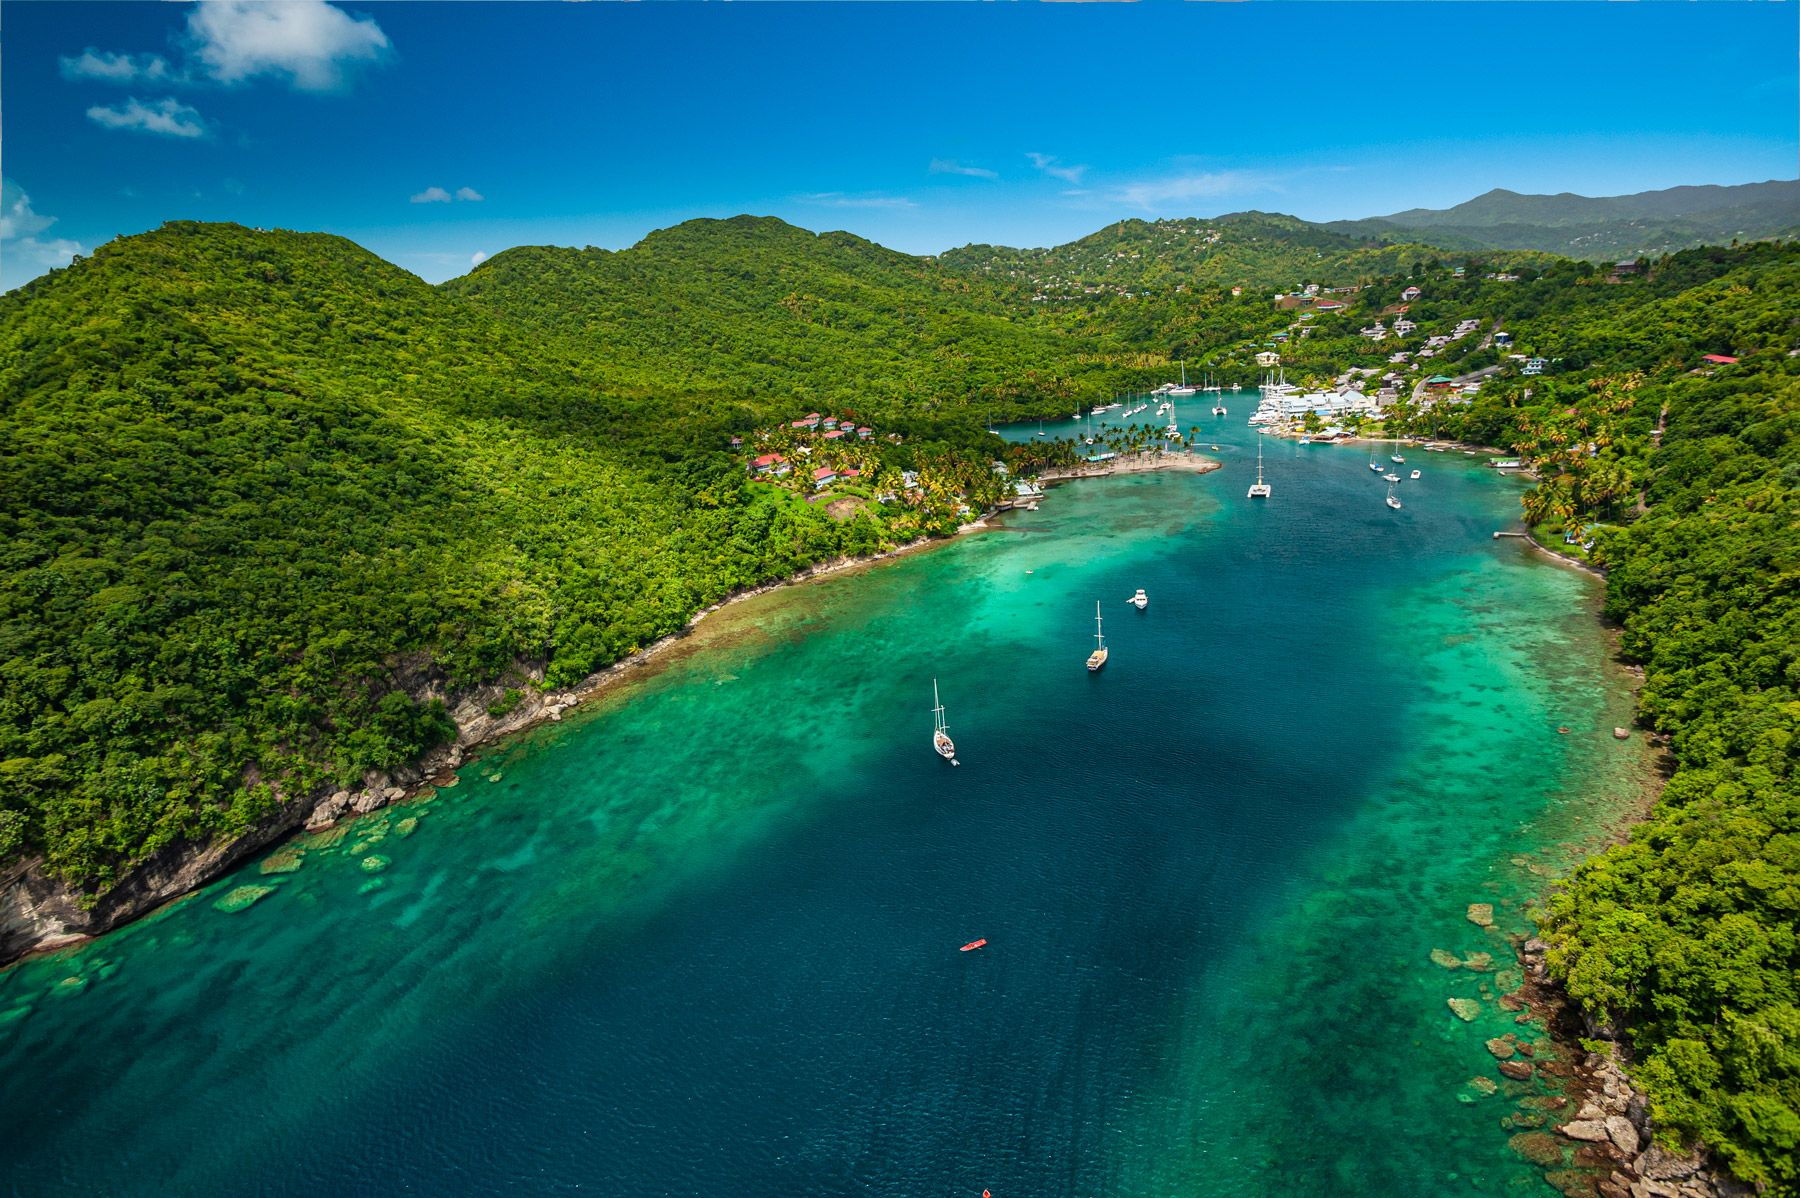 marigot bay at saint lucia